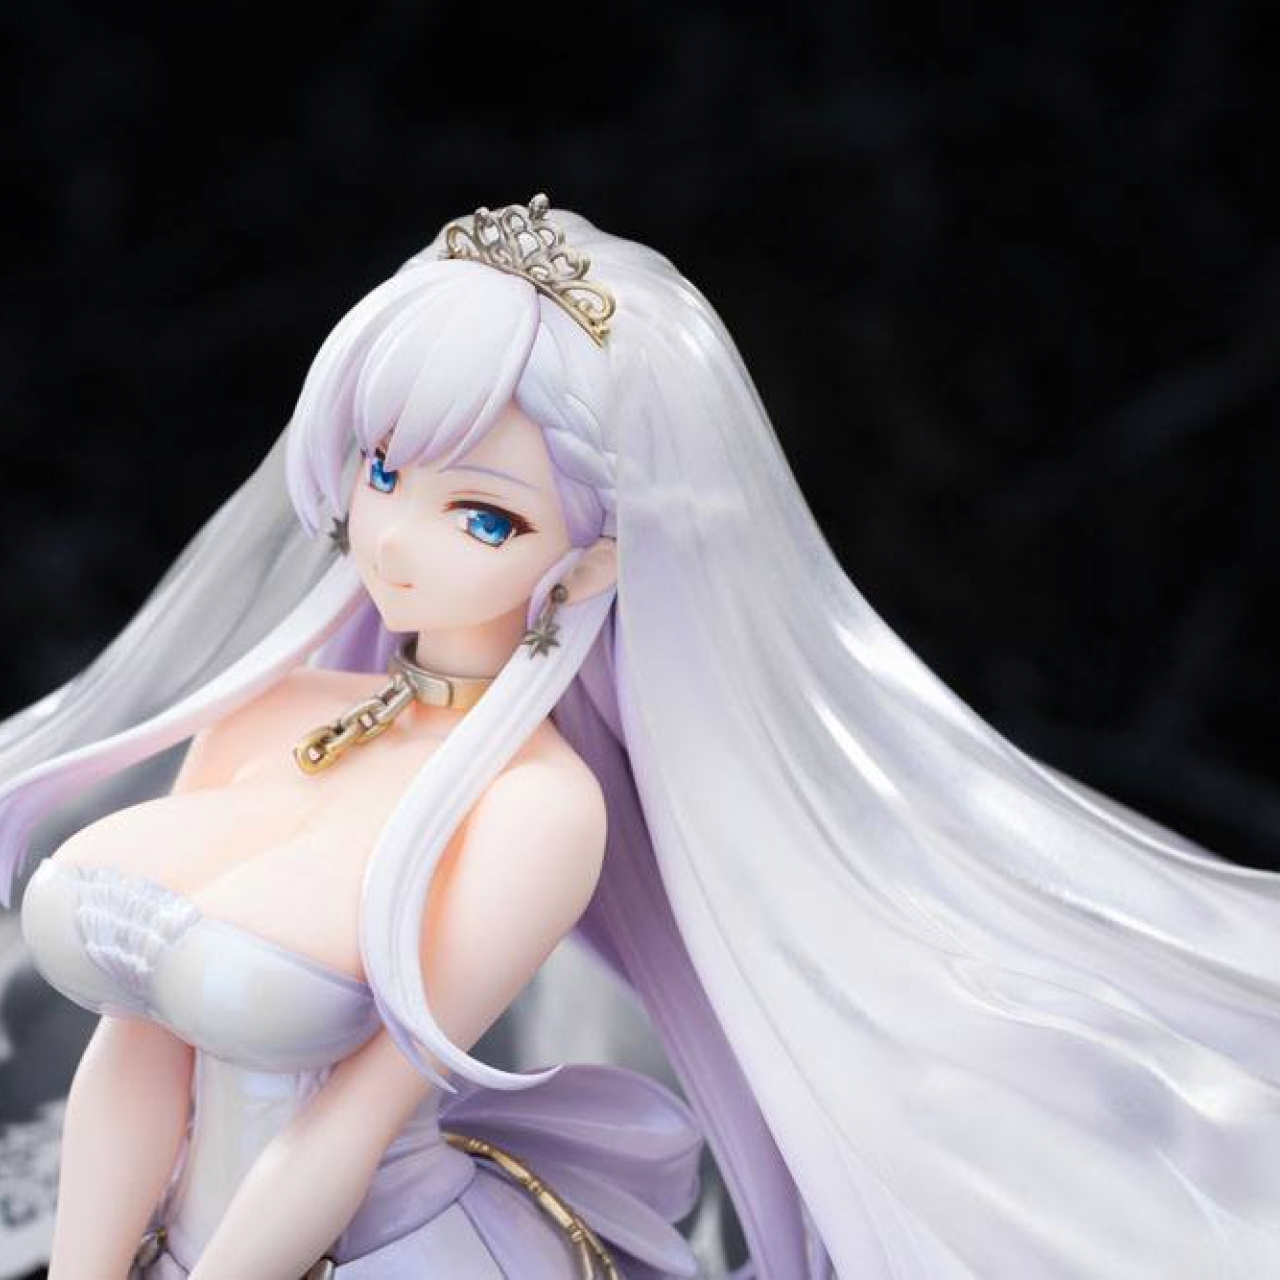 Azur Lane Belfast Skins We've added contactless ordering features, so you and your family can get. azur lane belfast skins